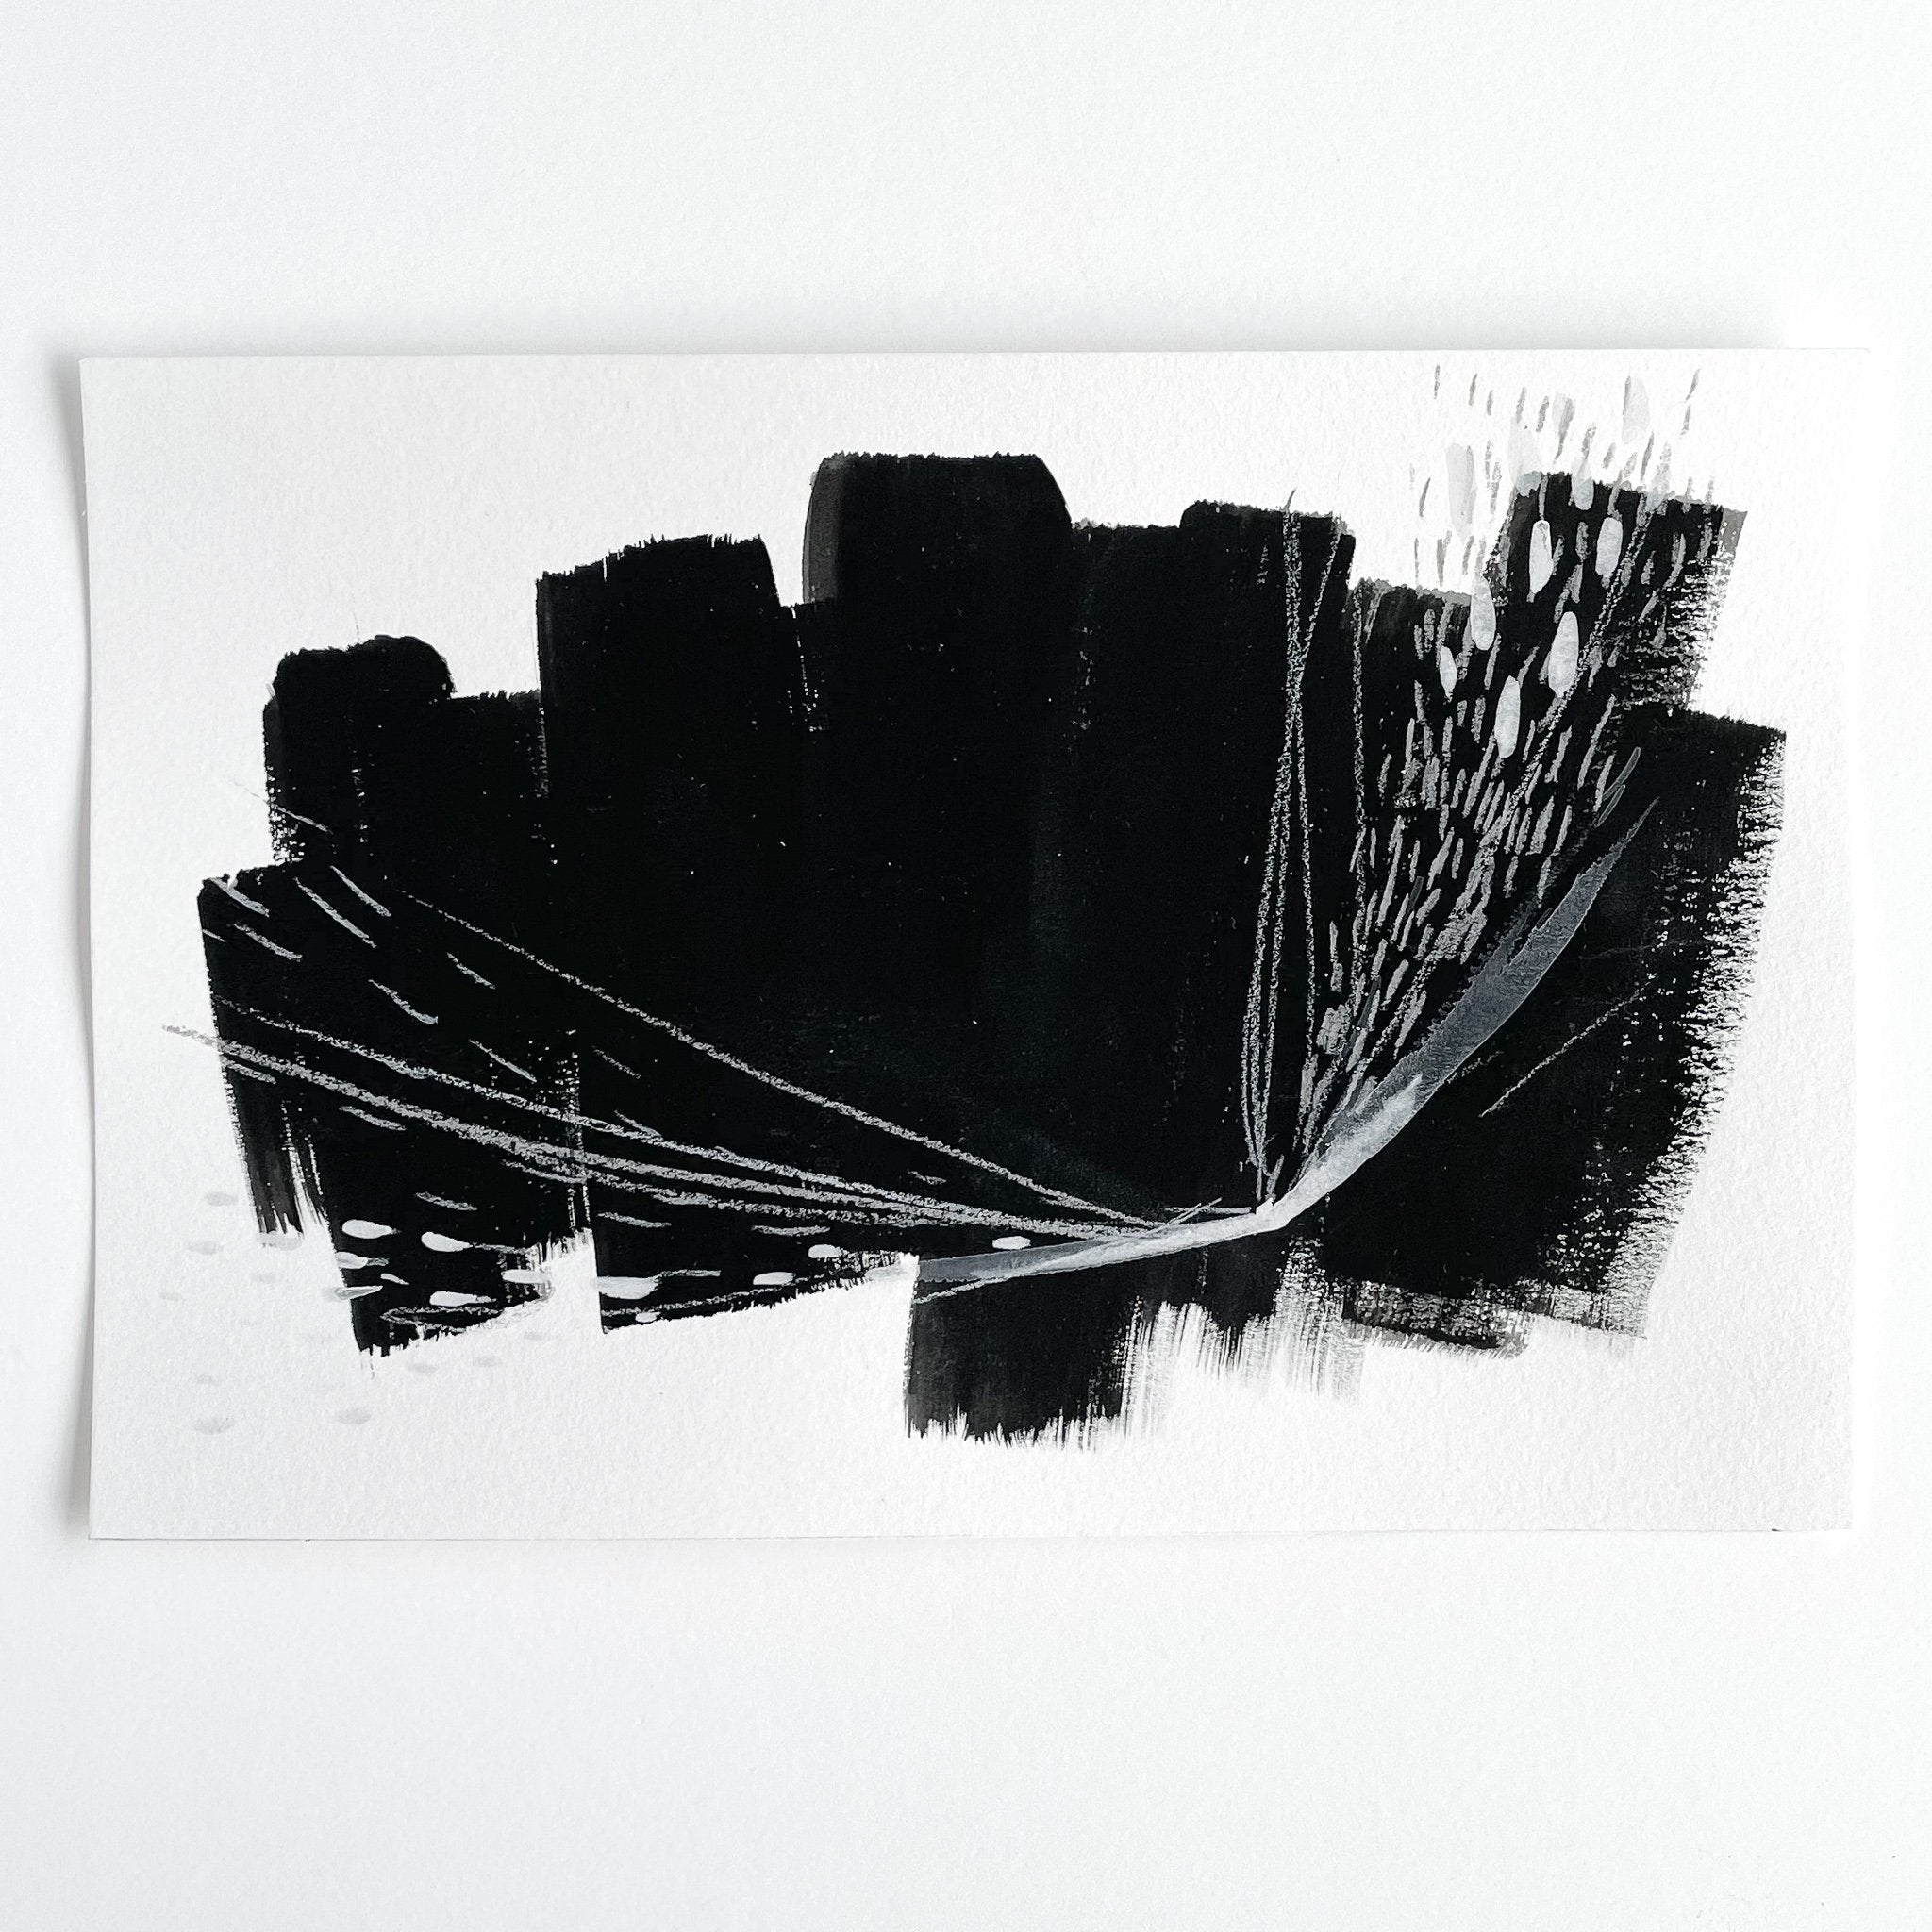 Stay 07 - Neutral, Black and white abstract painting on paper by artist Kait DeWolff. Kaitcreative